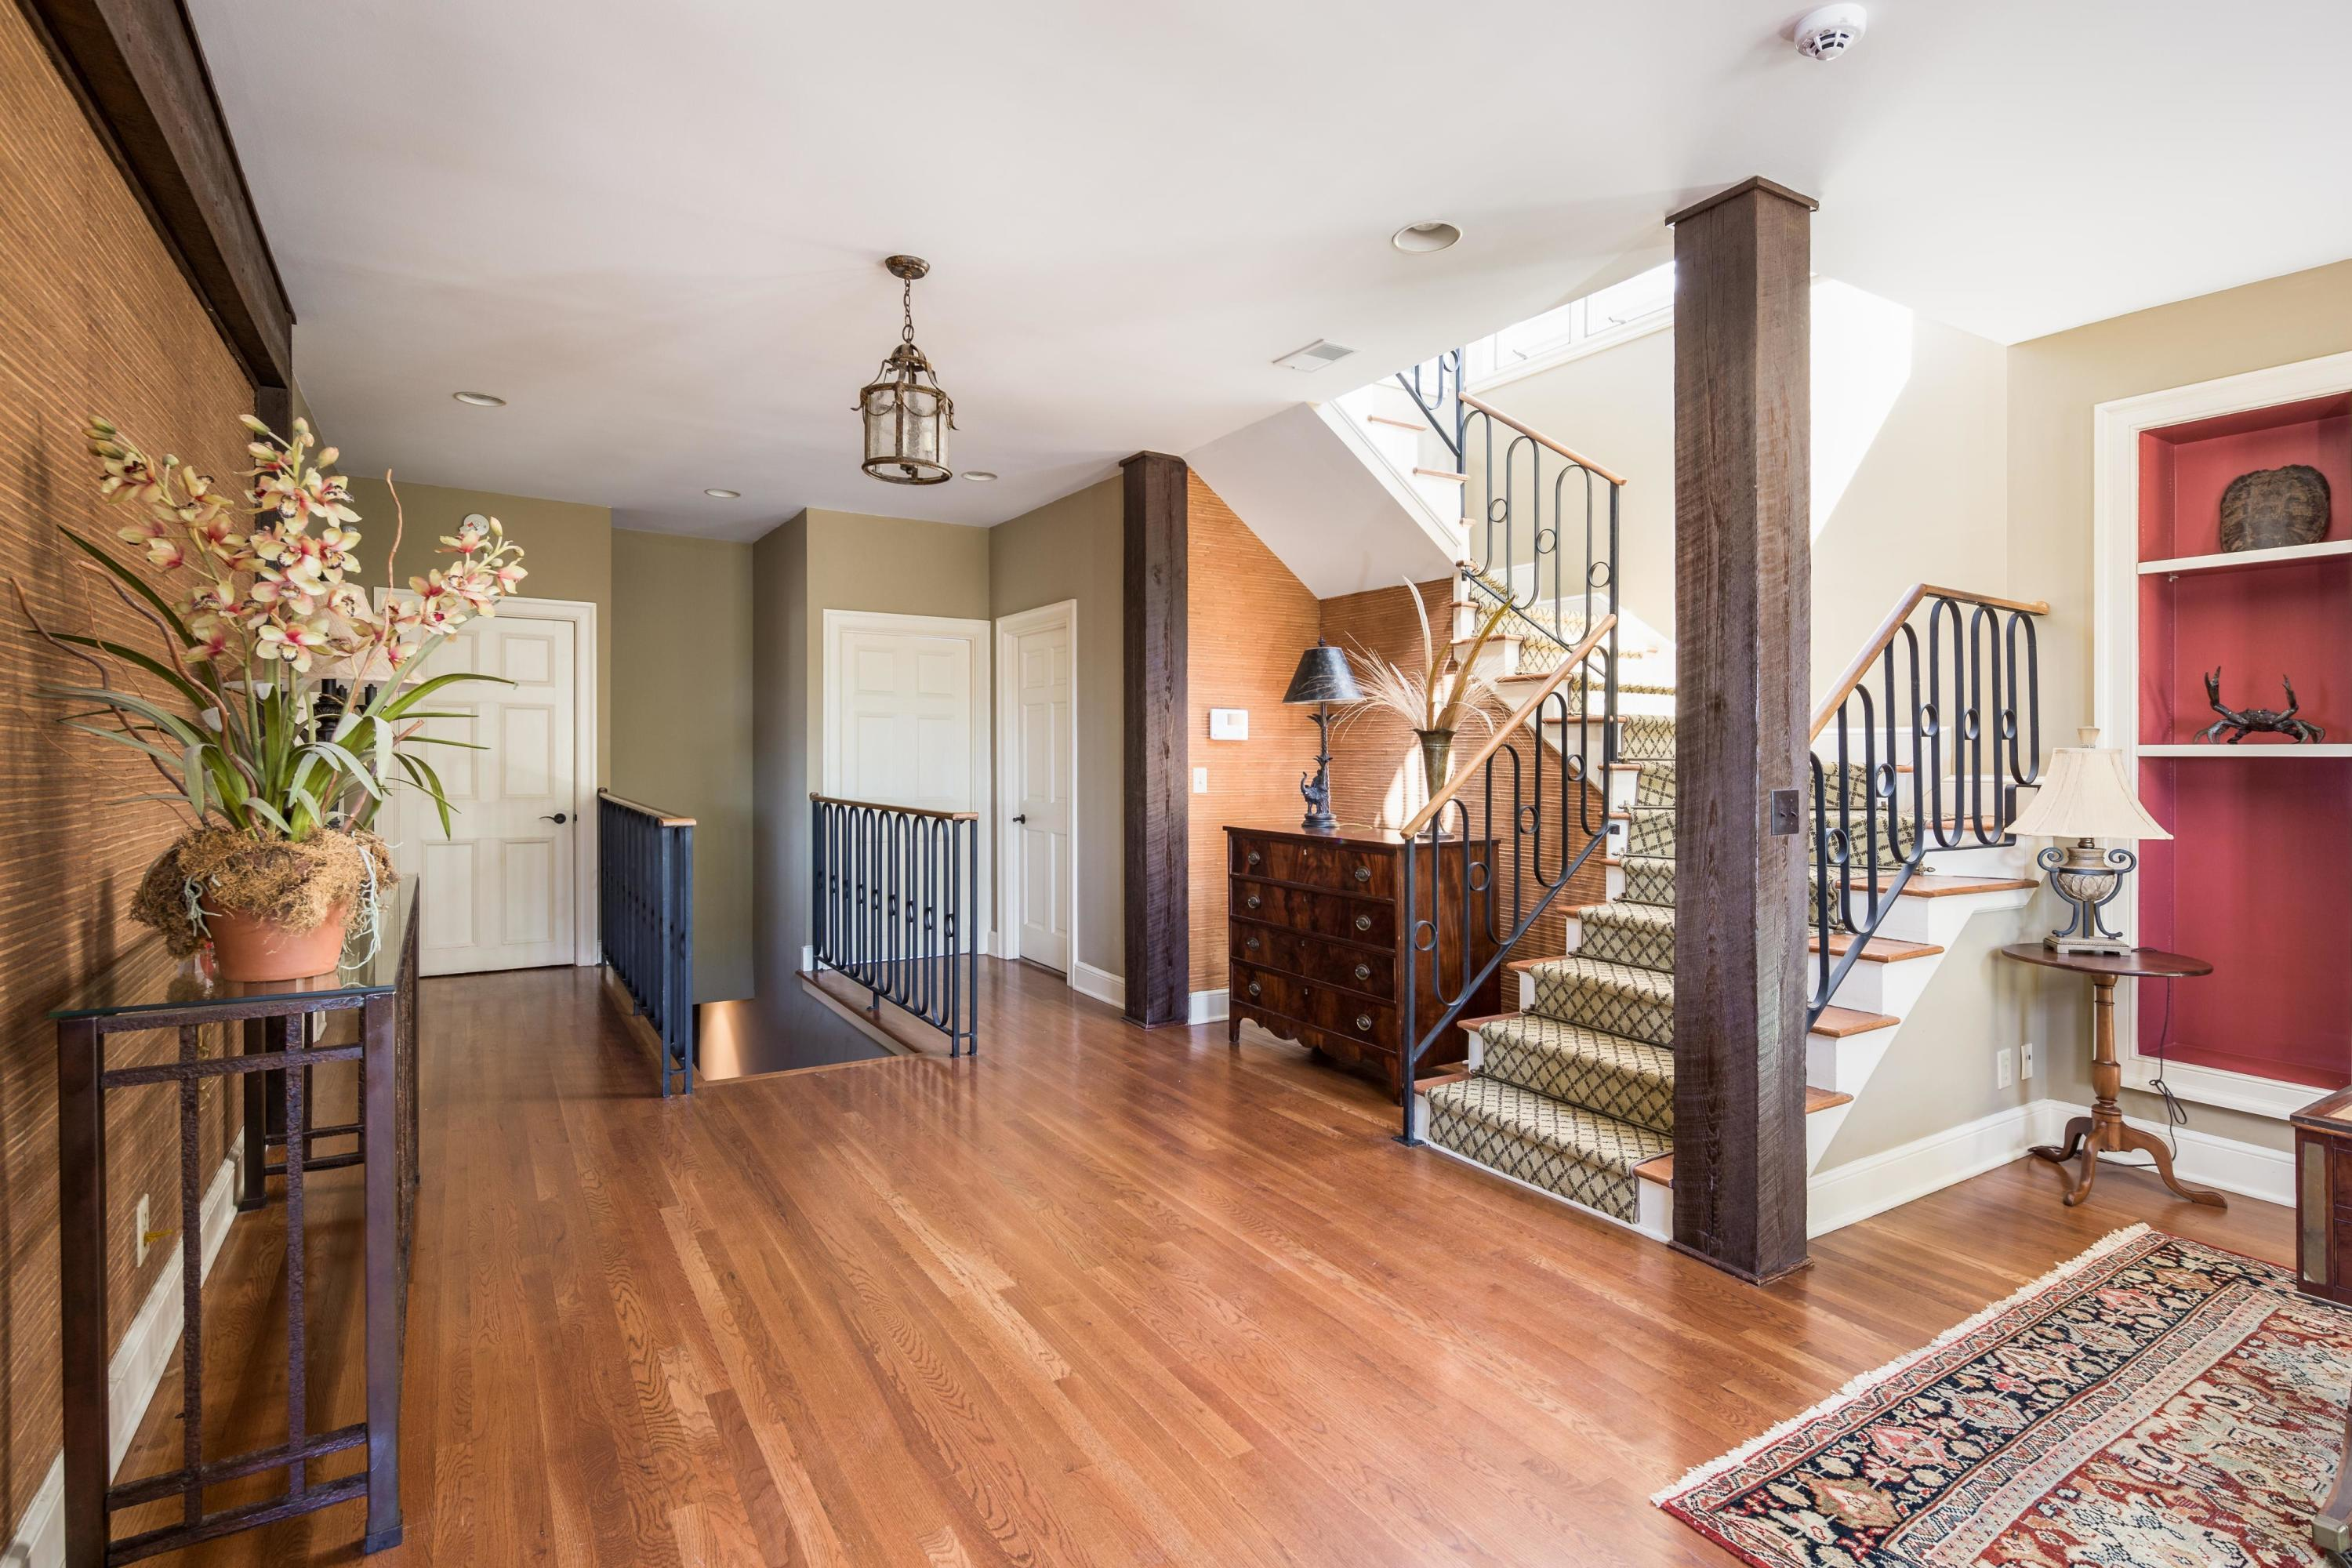 4 Gillon Charleston, SC 29401